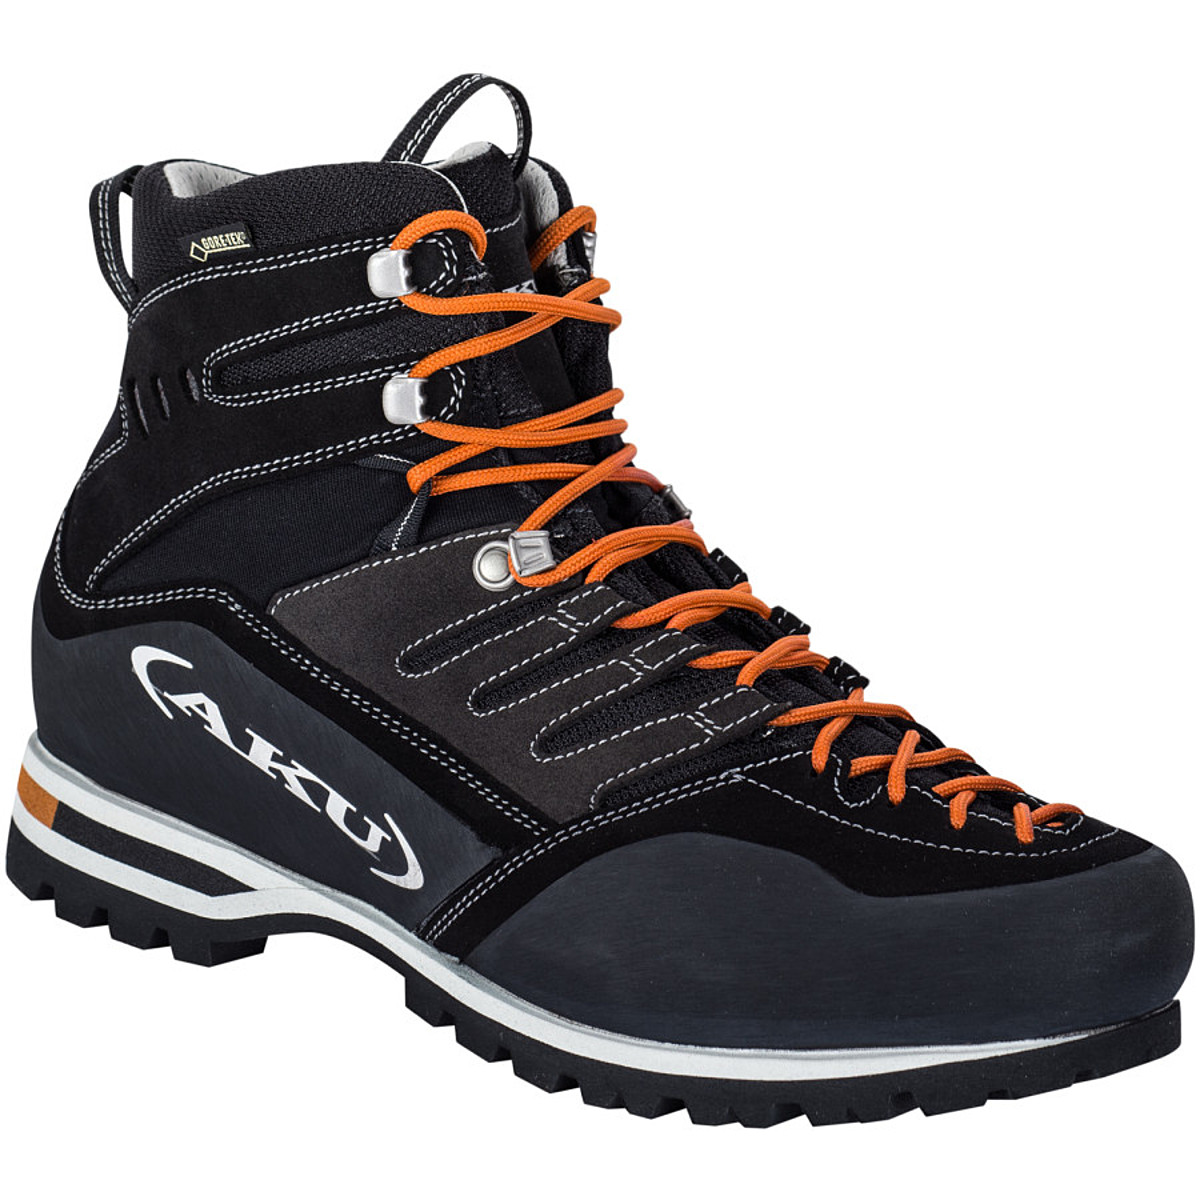 photo: AKU Viaz GTX footwear product